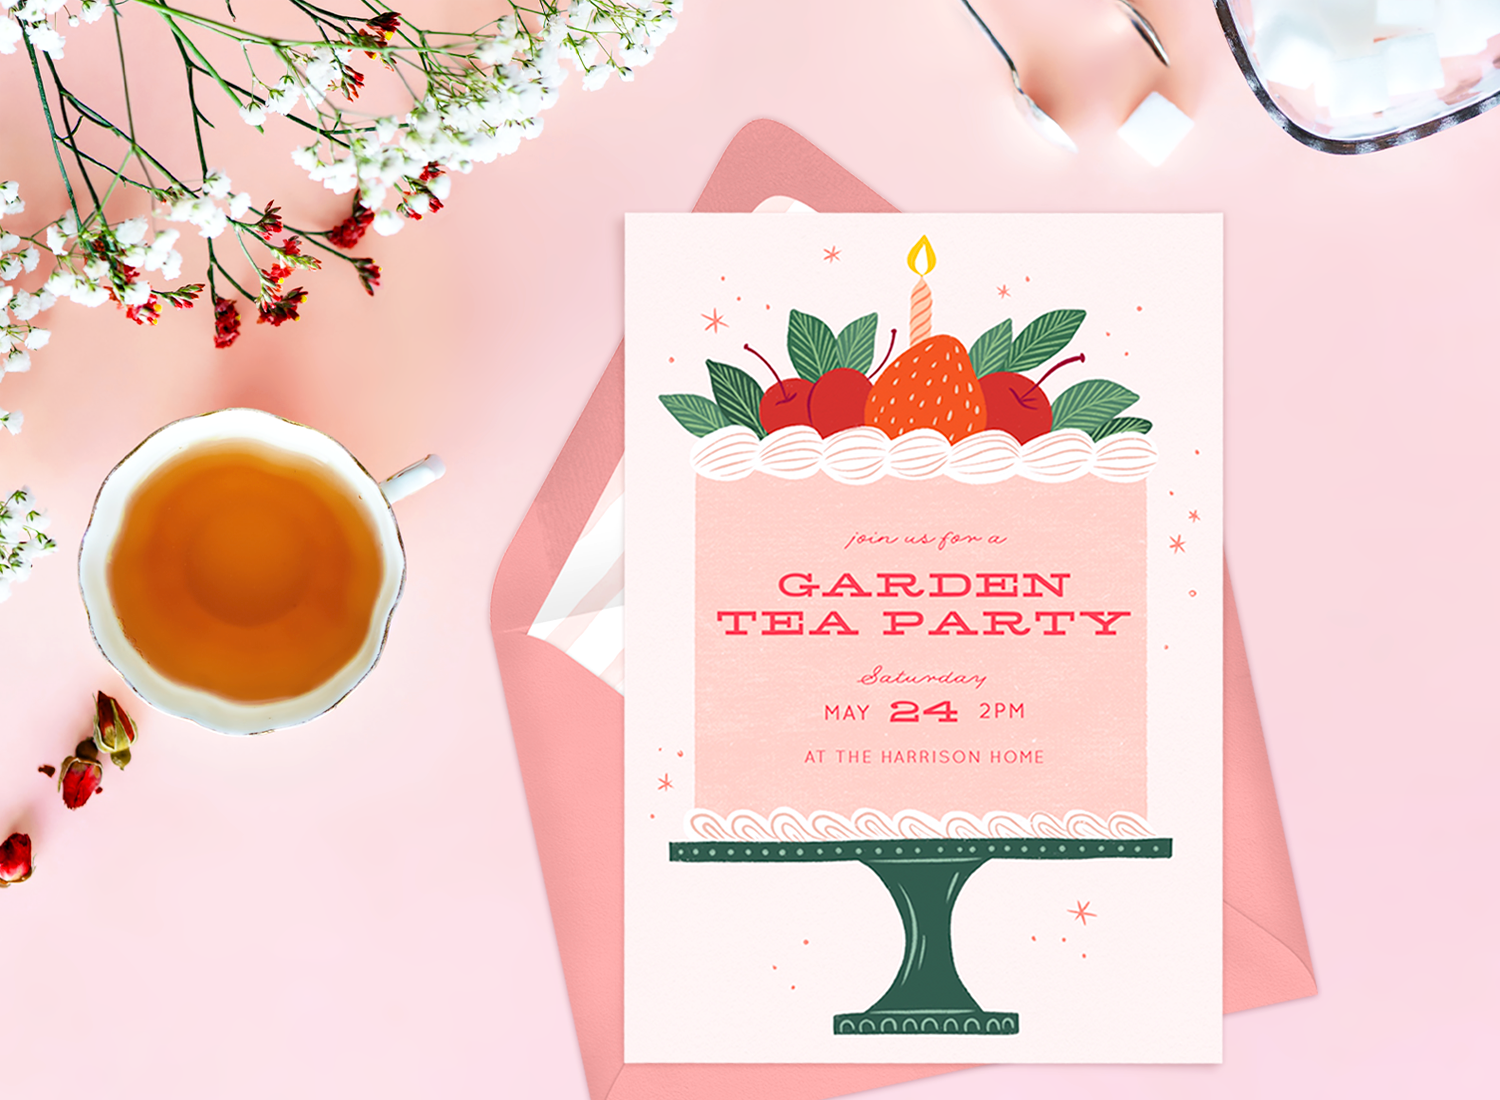 Tea party invitations: a cup of tea, flowers, and an invitation